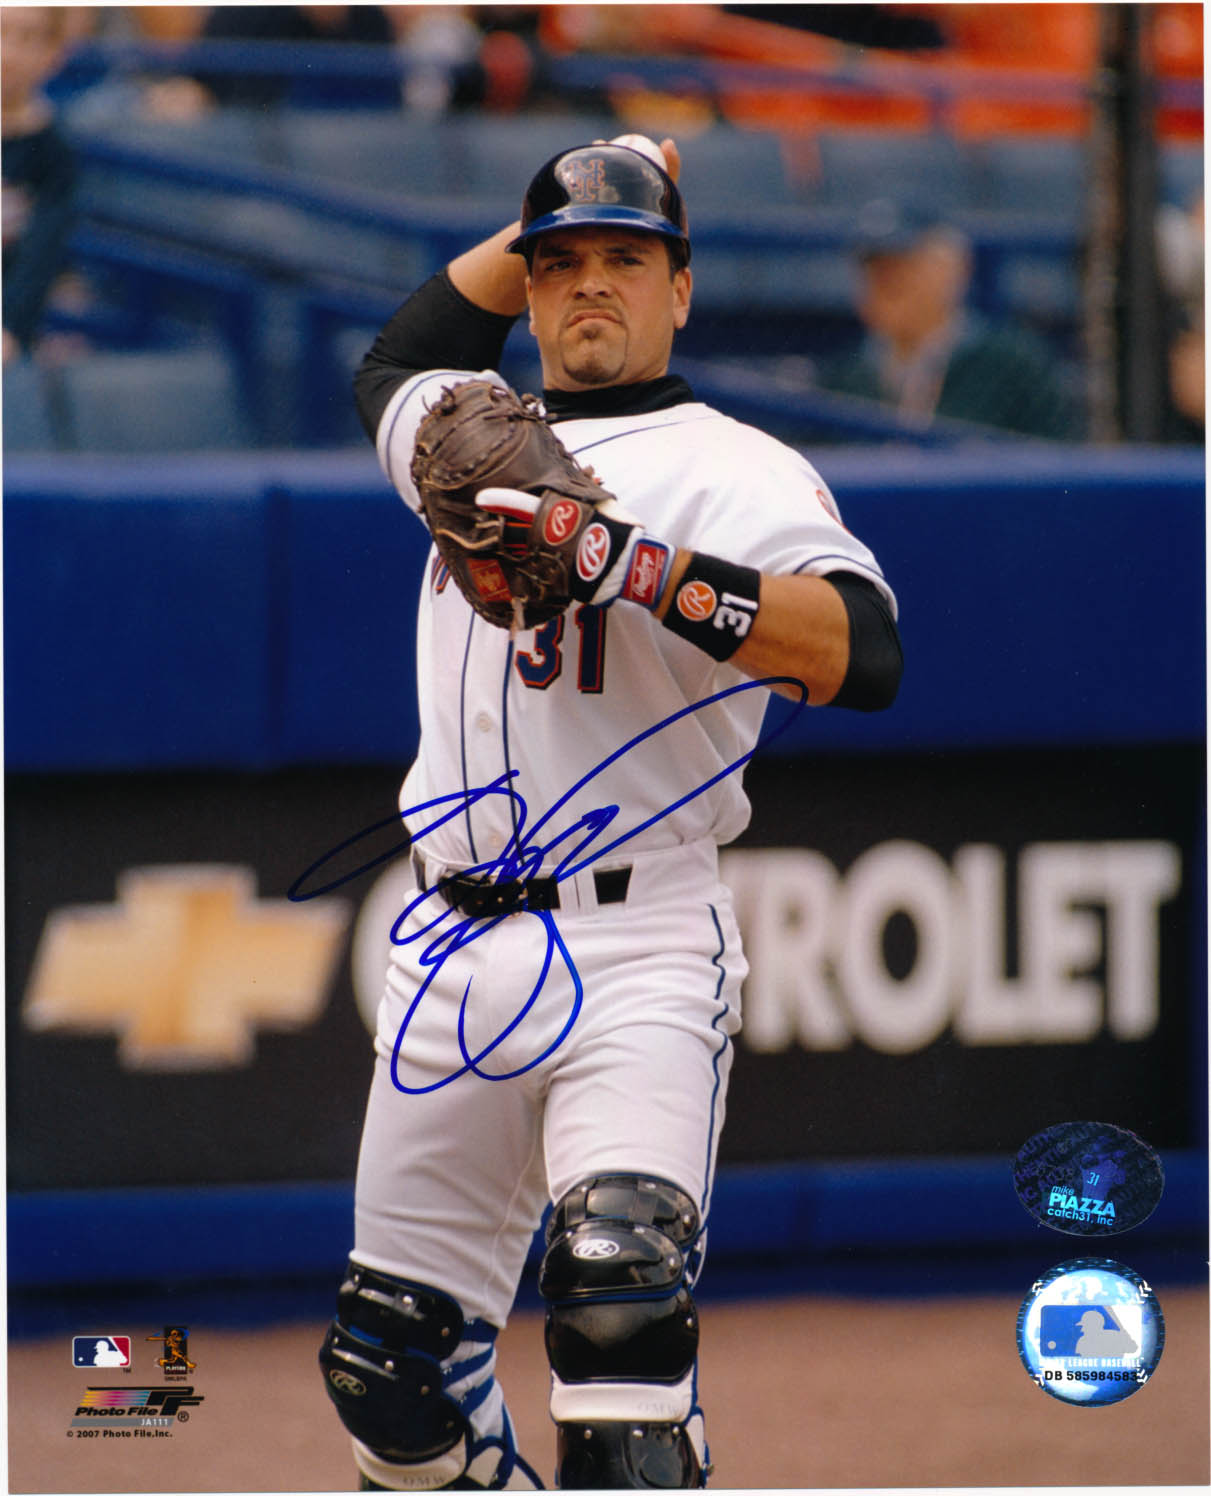 Lot #169  8 x 10  Piazza, Mike Cond: 9.5